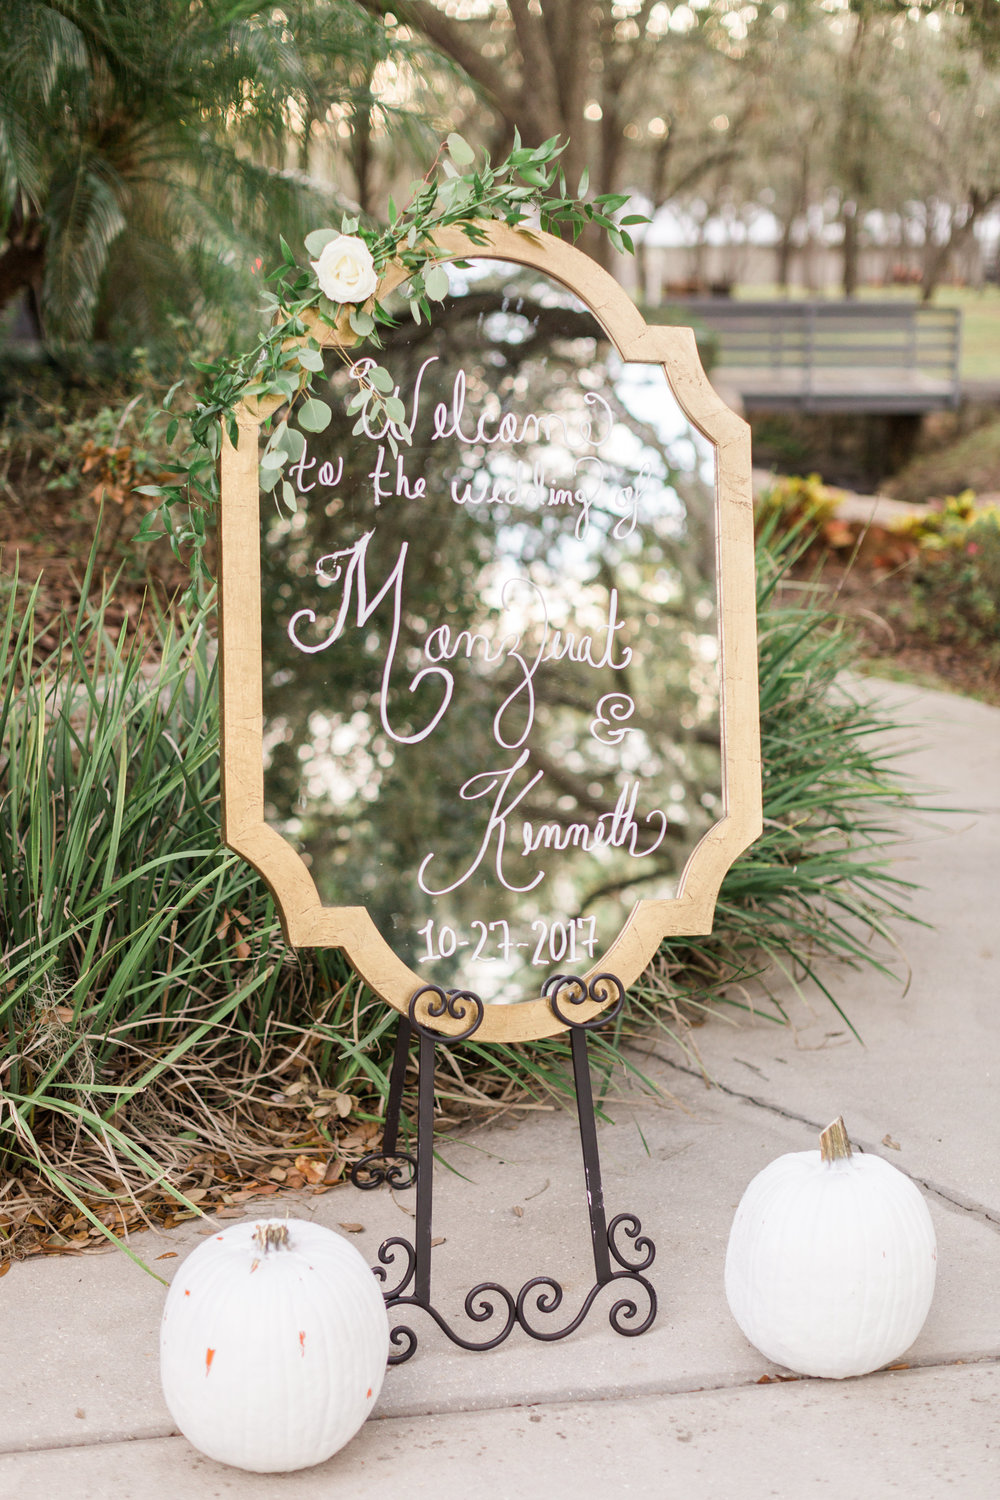 Monzy & Kenny's Wedding | Lauren Galloway Photography-627.jpg